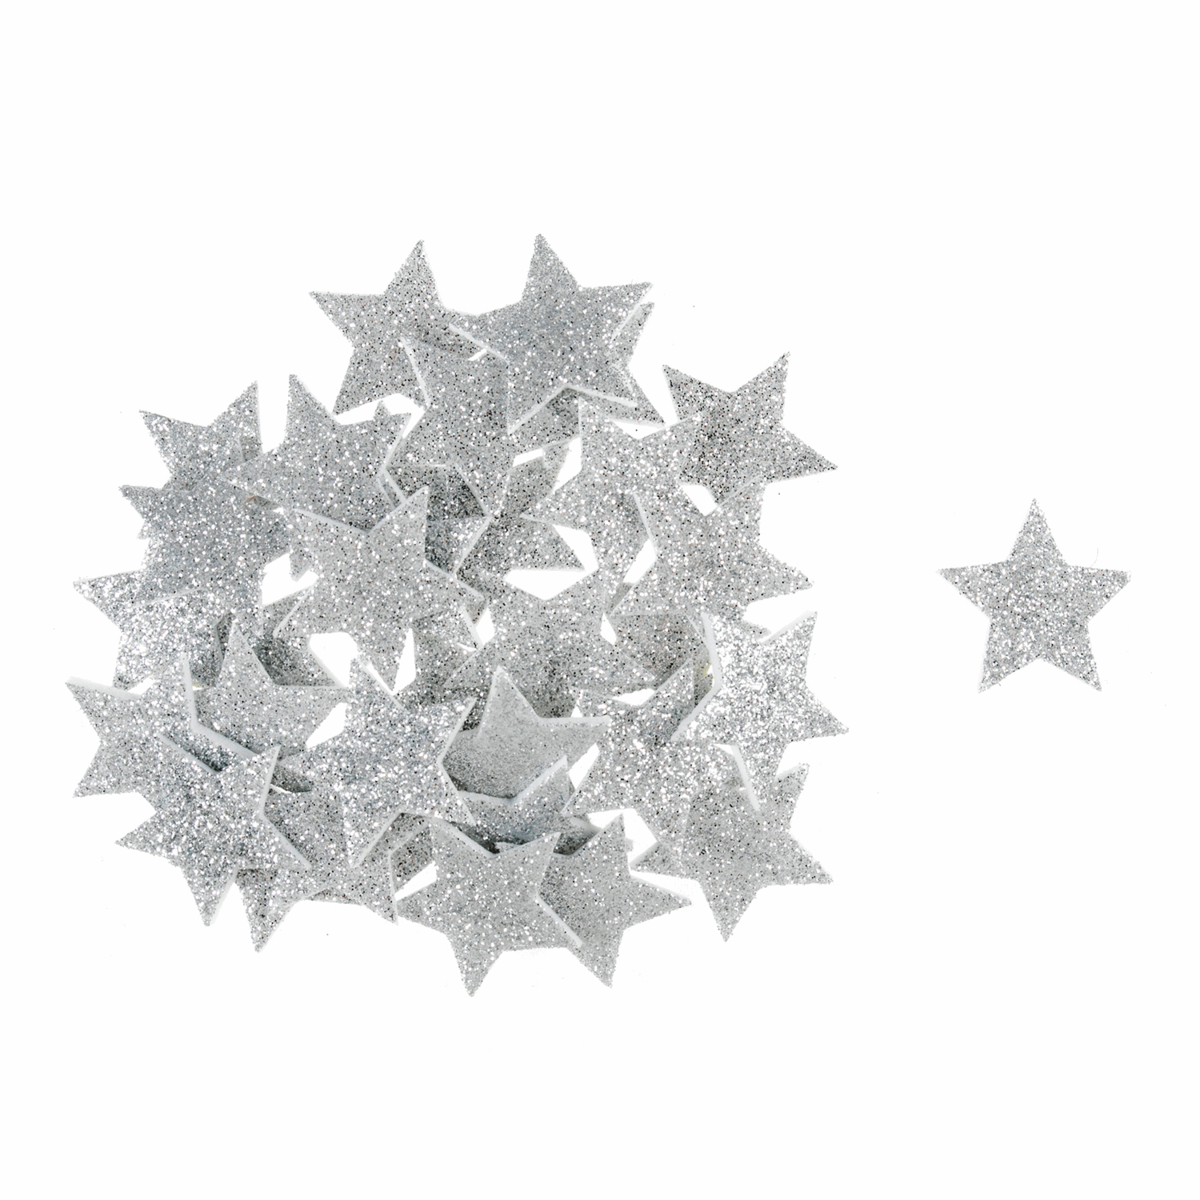 Picture of Craft Embellishments: Glitter Stars: Silver: 35 Pieces